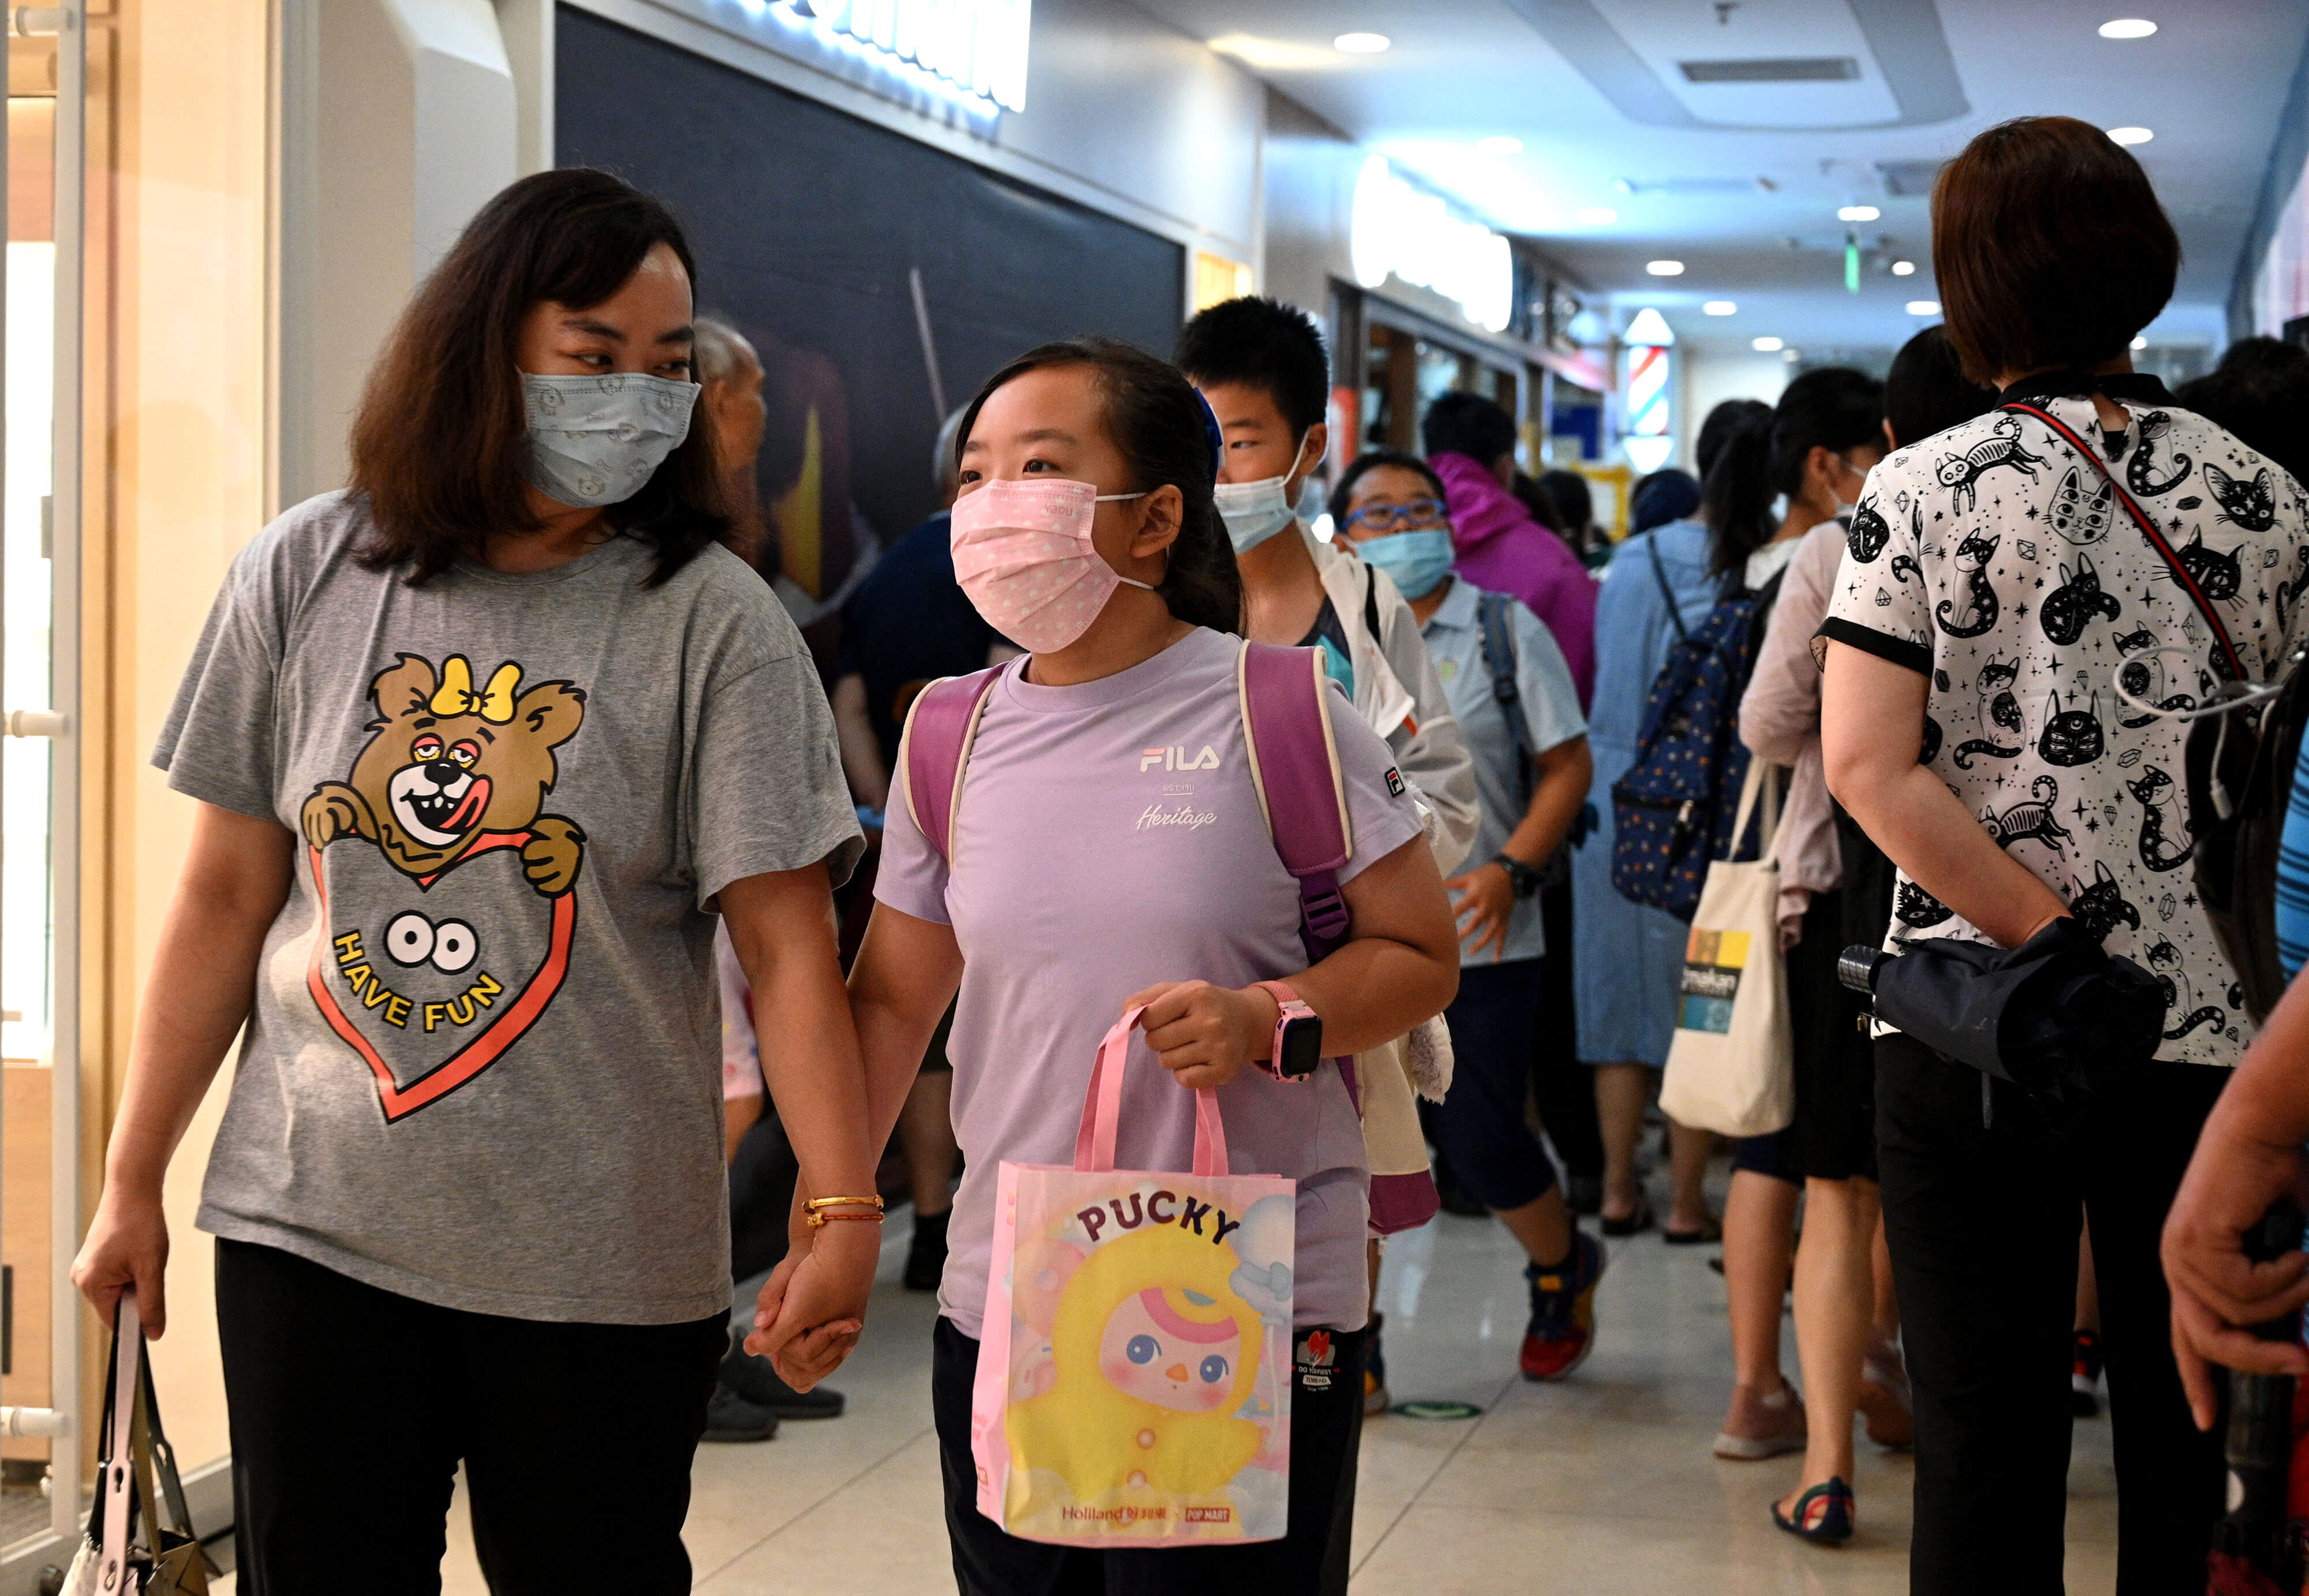 School's out? Tuition curbs pile on the anxiety for China's parents